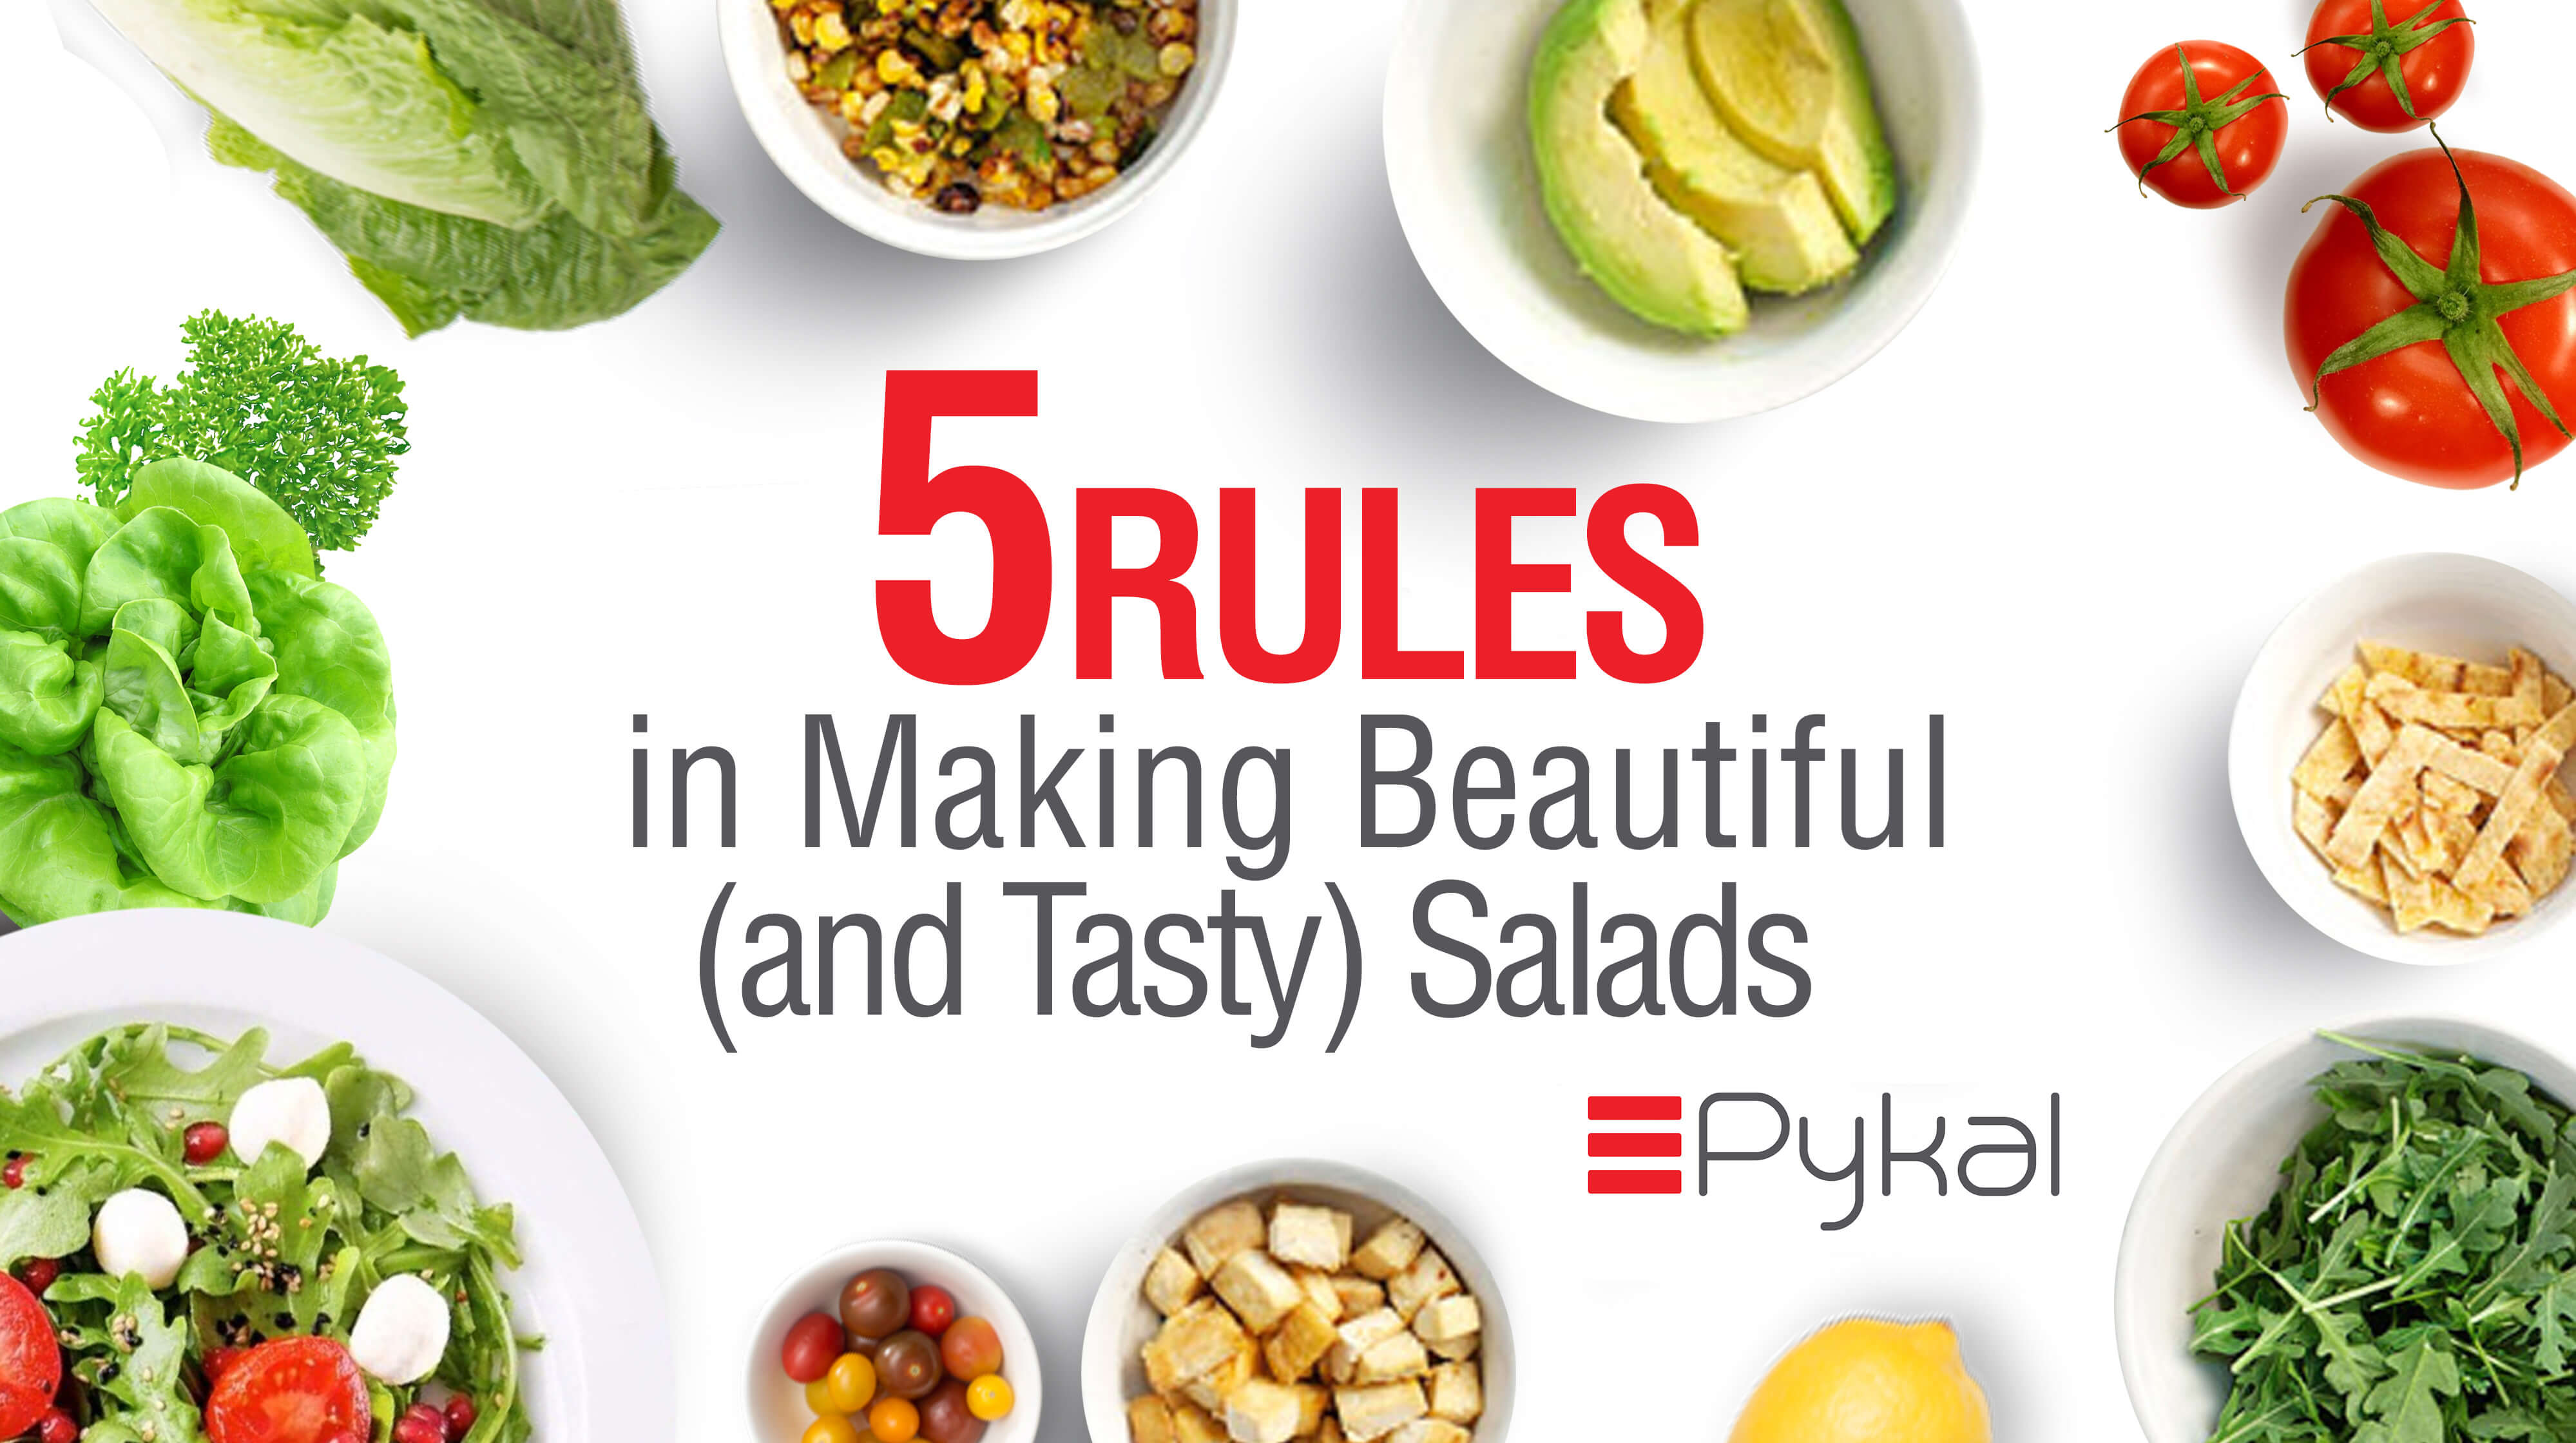 5 RULES IN MAKING BEAUTIFUL (AND TASTY) SALAD